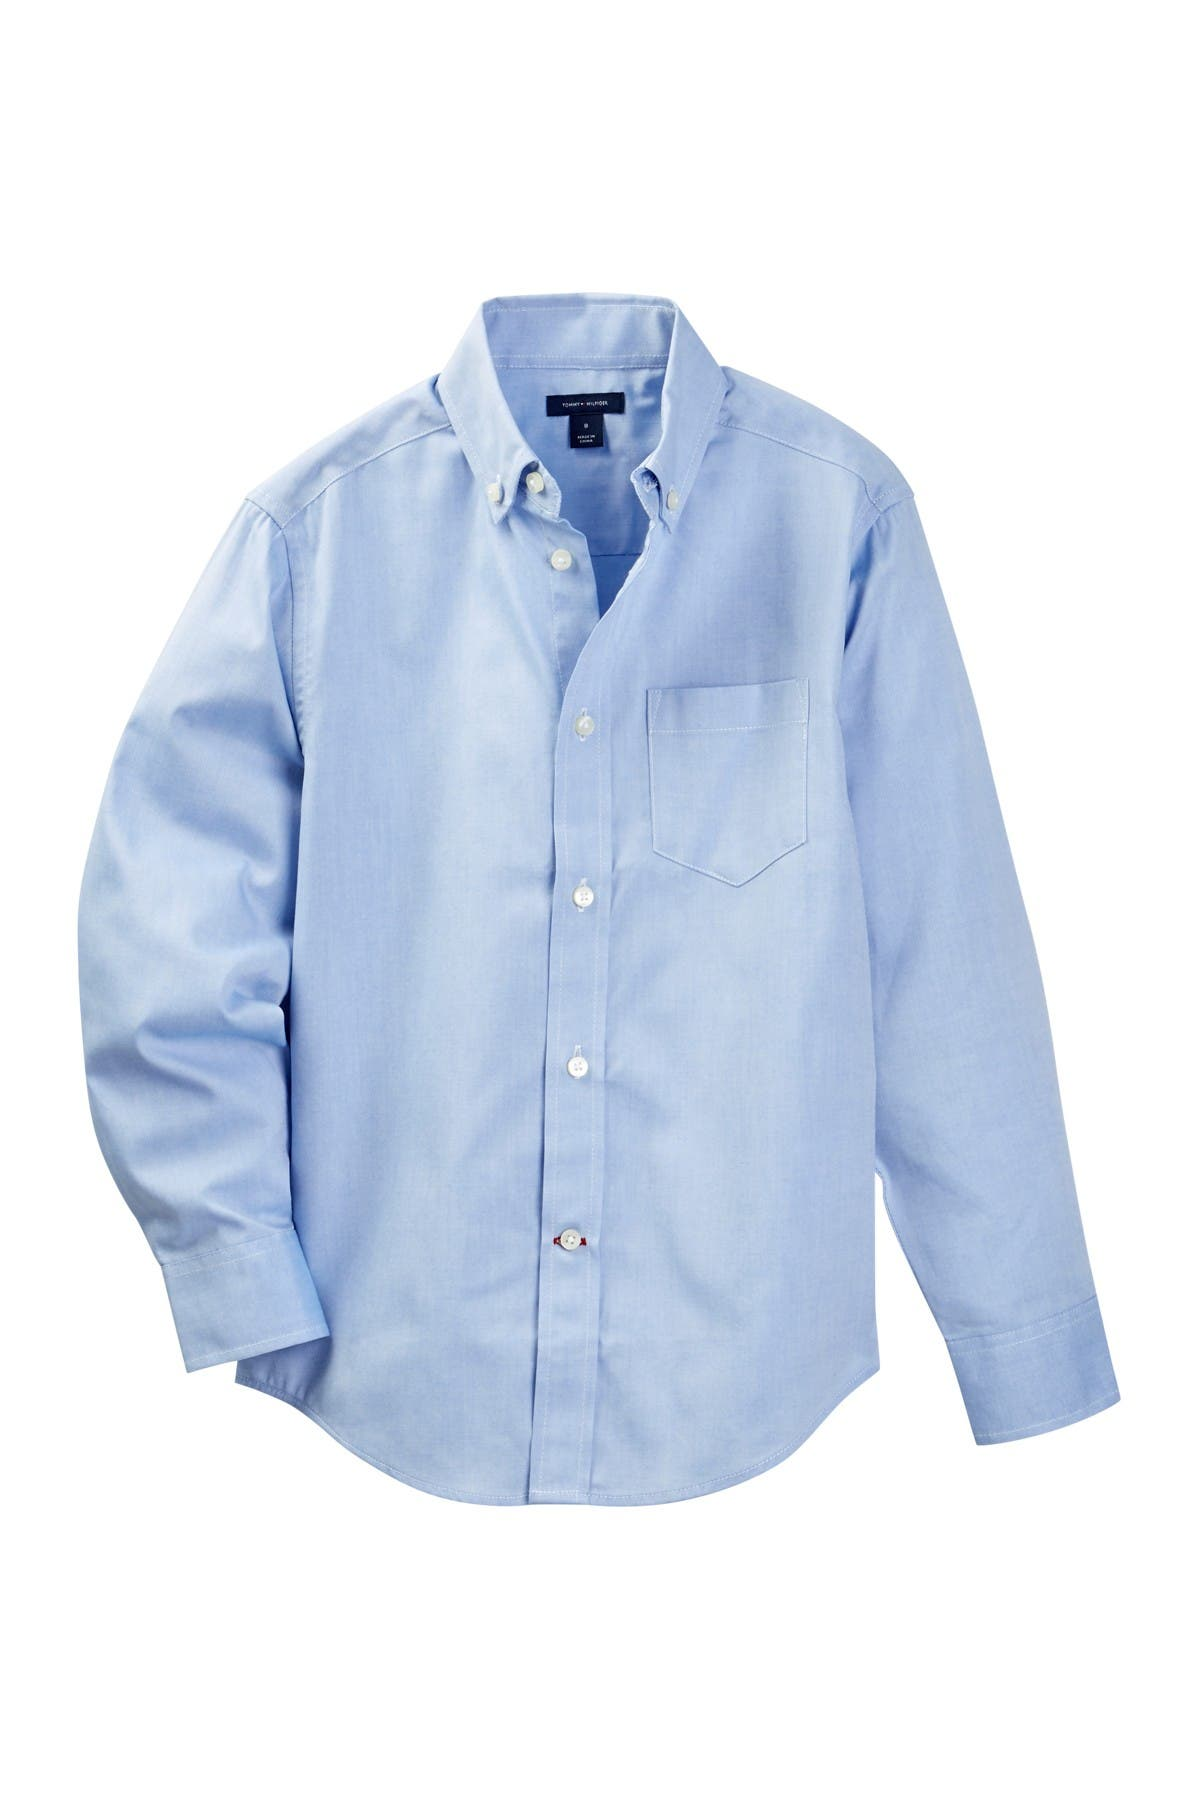 Image of Tommy Hilfiger Pinpoint Oxford Shirt